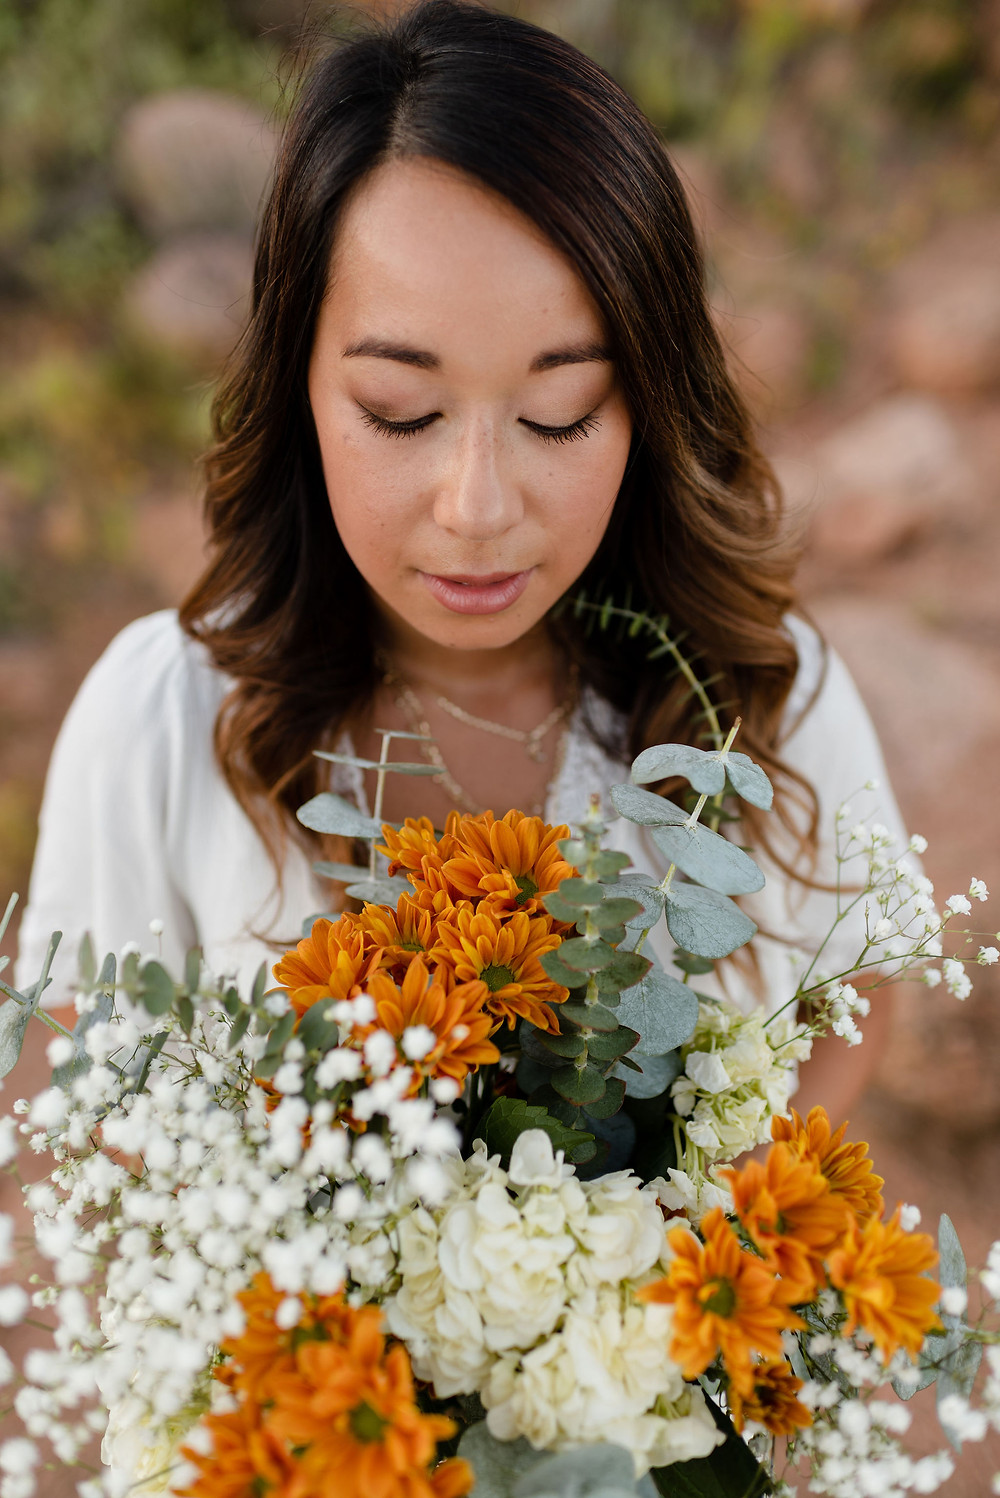 girl looking down at bouquet with white and orange flowers